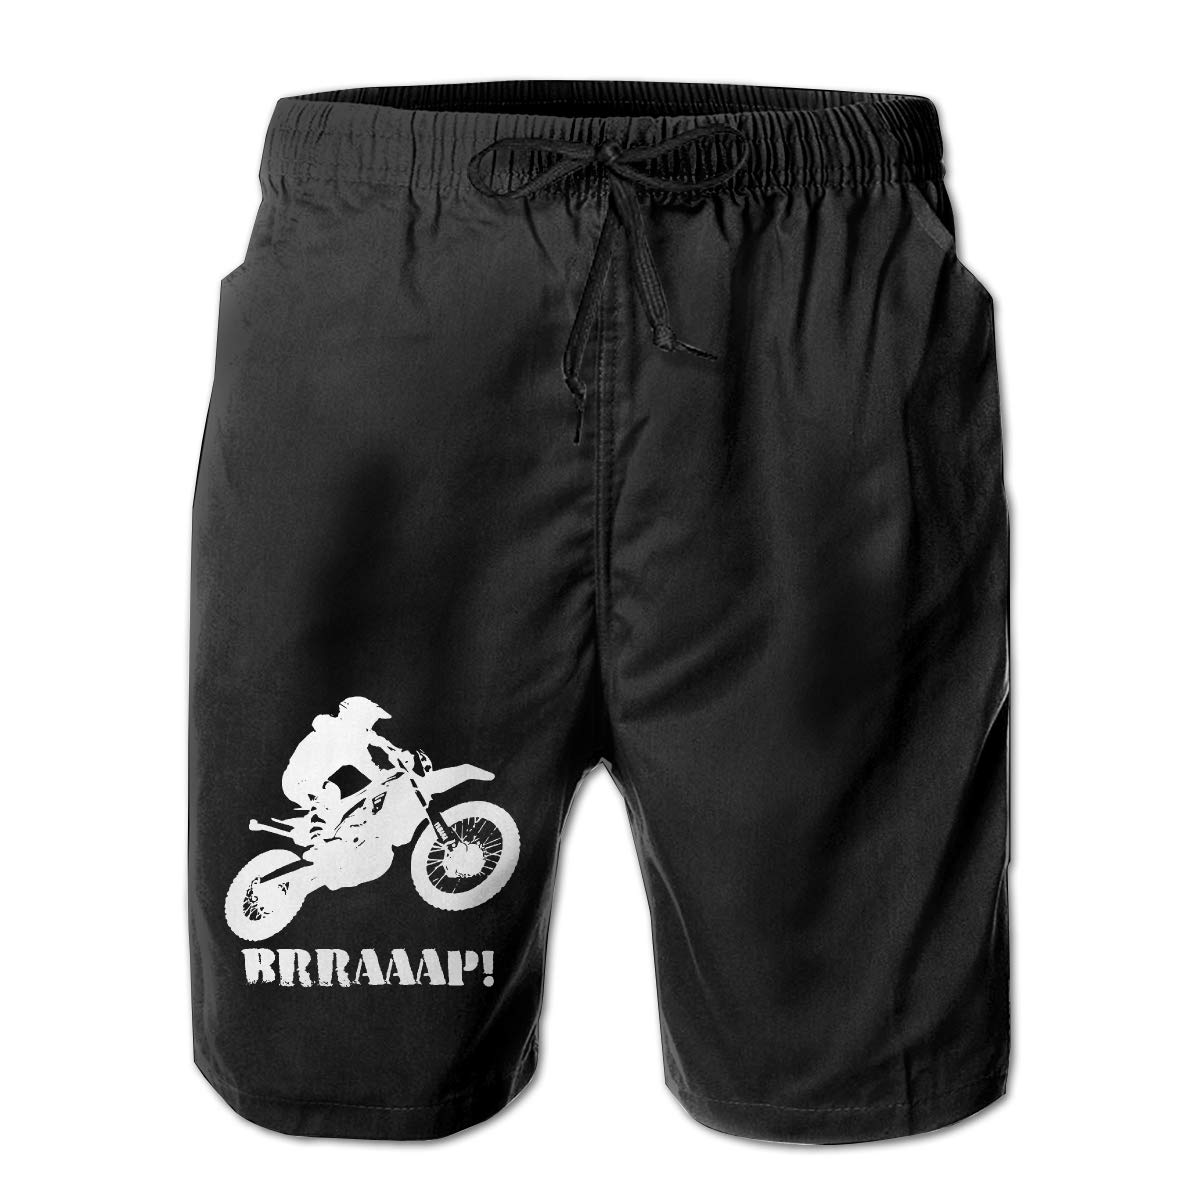 Monwe Got Dirt Bike Motorcross Racing Boys Summer Casual Shorts,Beach Shorts Board Shorts